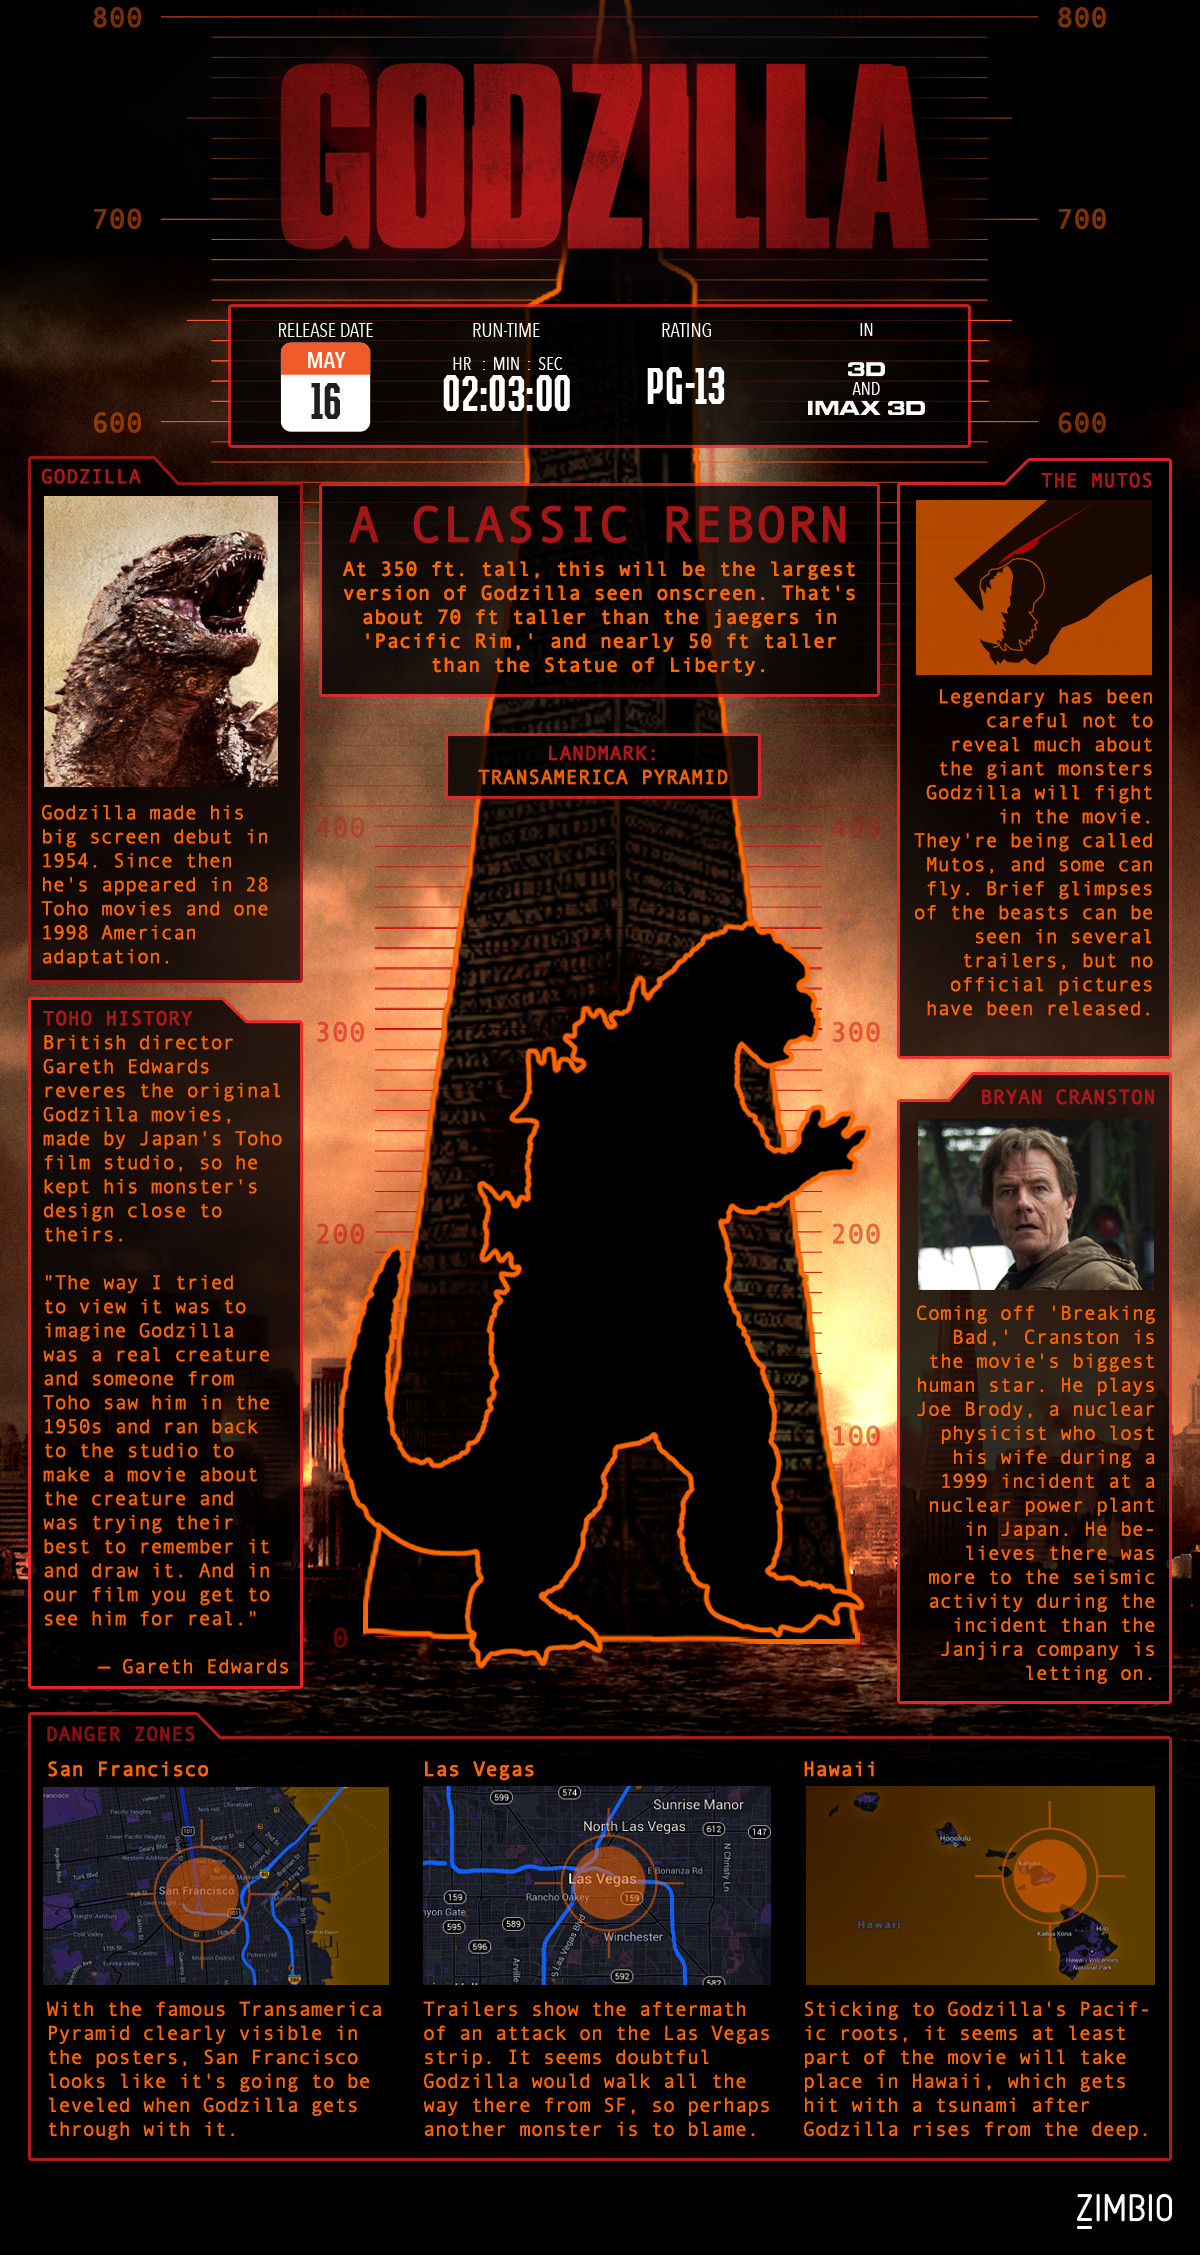 Everything You Need to Know About 'Godzilla' in One Quick-Reference Graphic